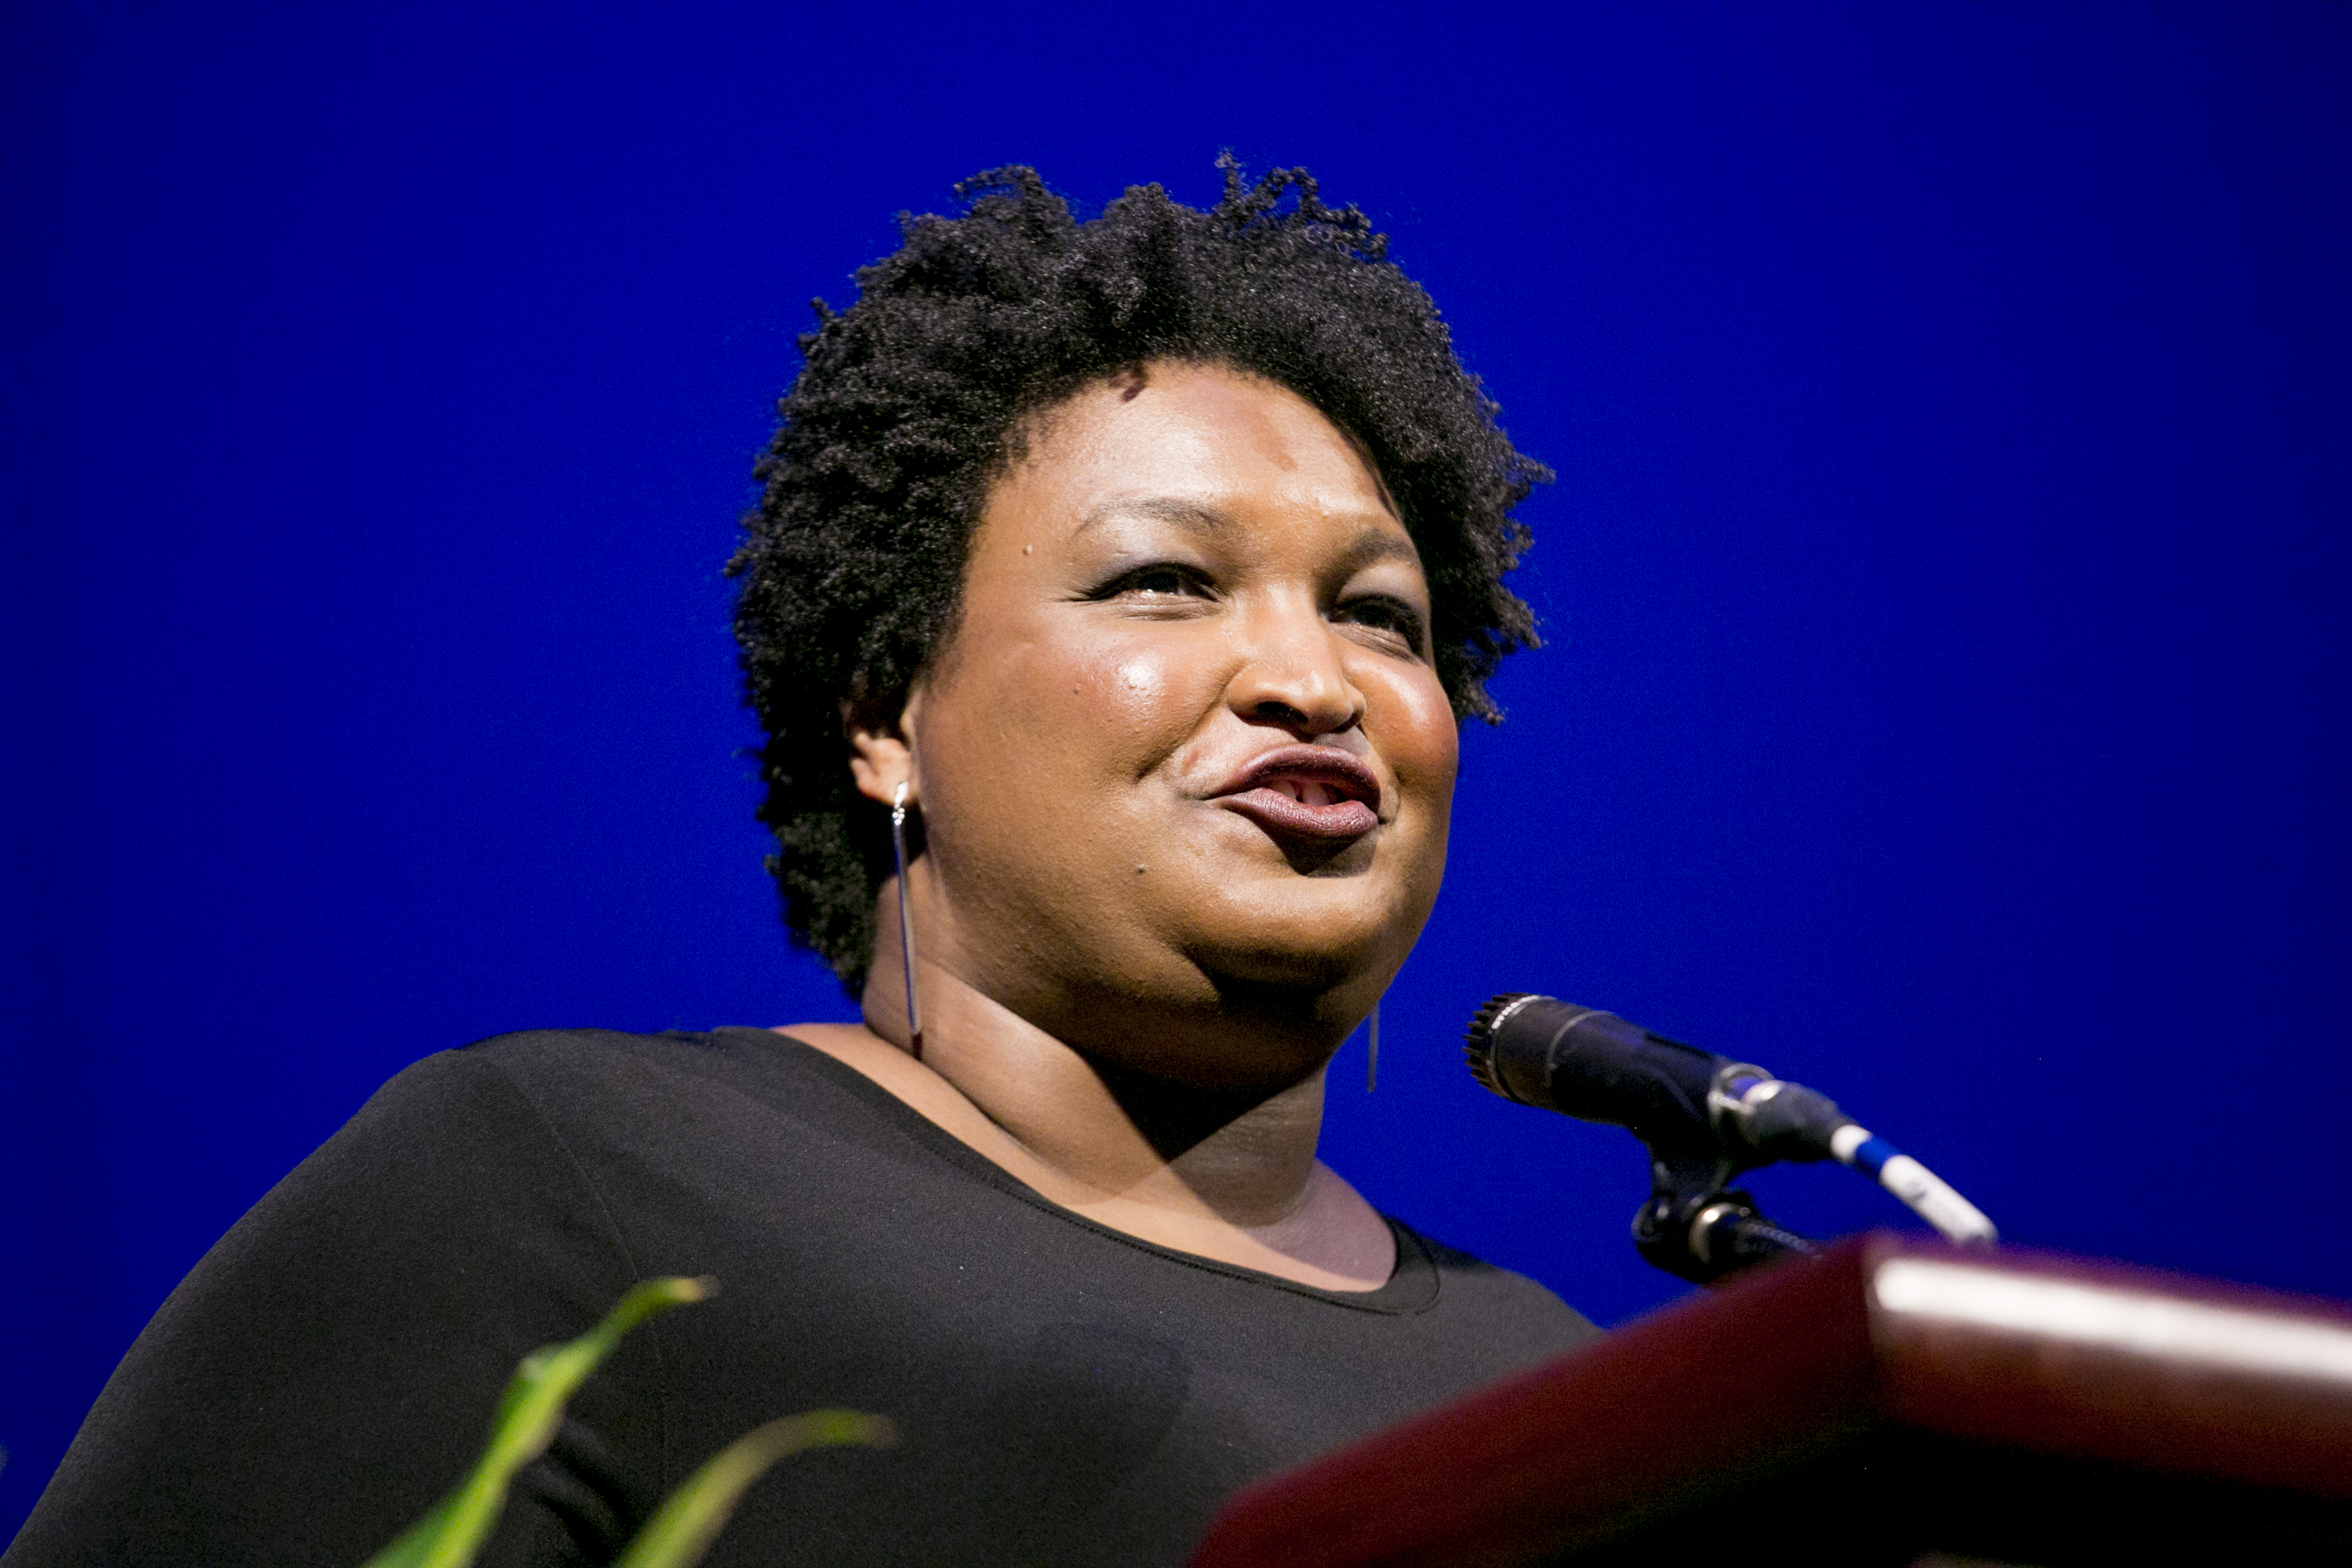 Stacey Abrams to launch voter protection program in battleground states ahead of the 2020 election - The Washington Post